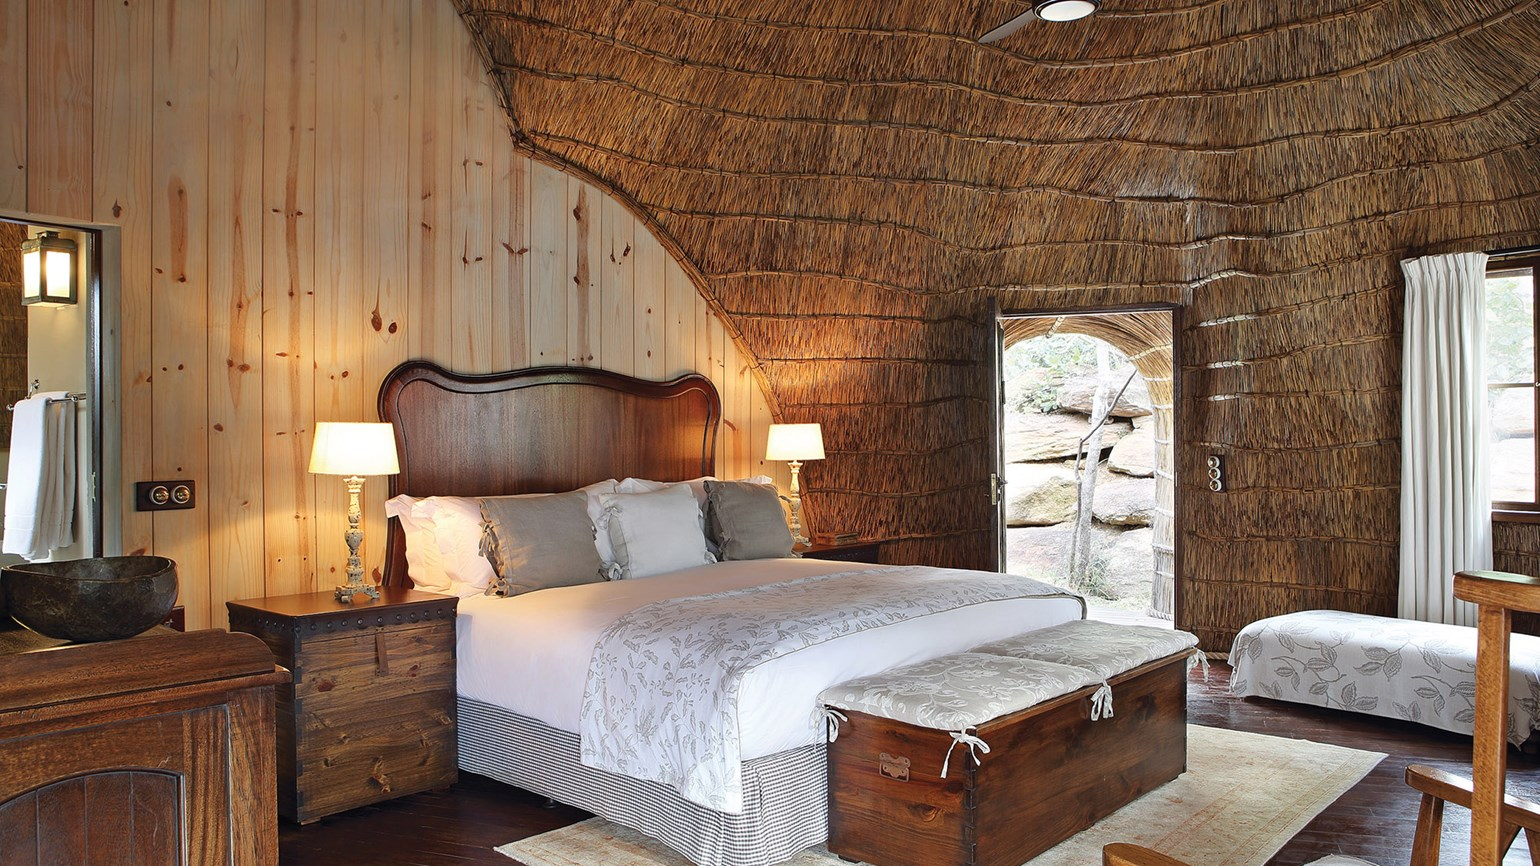 South Africa's Saxon Collection offers 'Urban Luxury and Safari Experience'